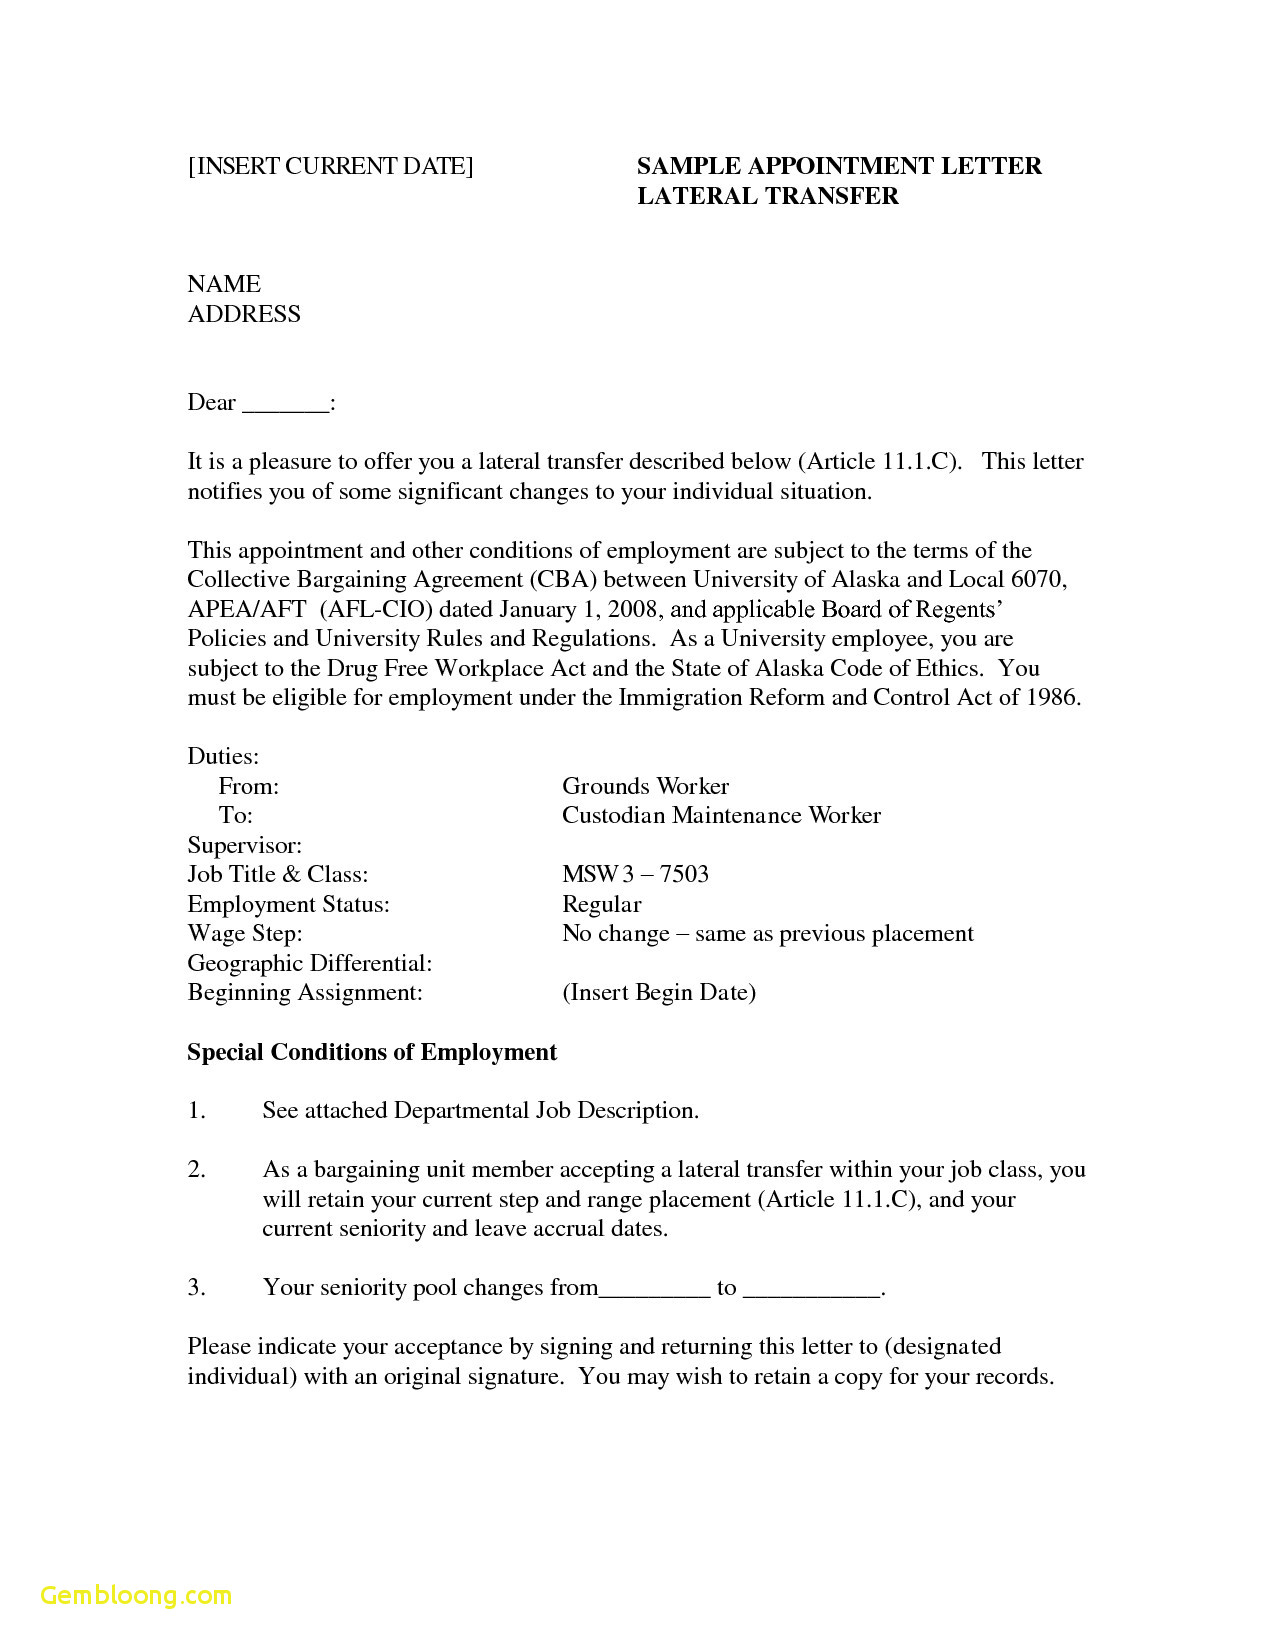 Roof Inspection Letter Template - Resume with Template Download now Sample Resume In Word format